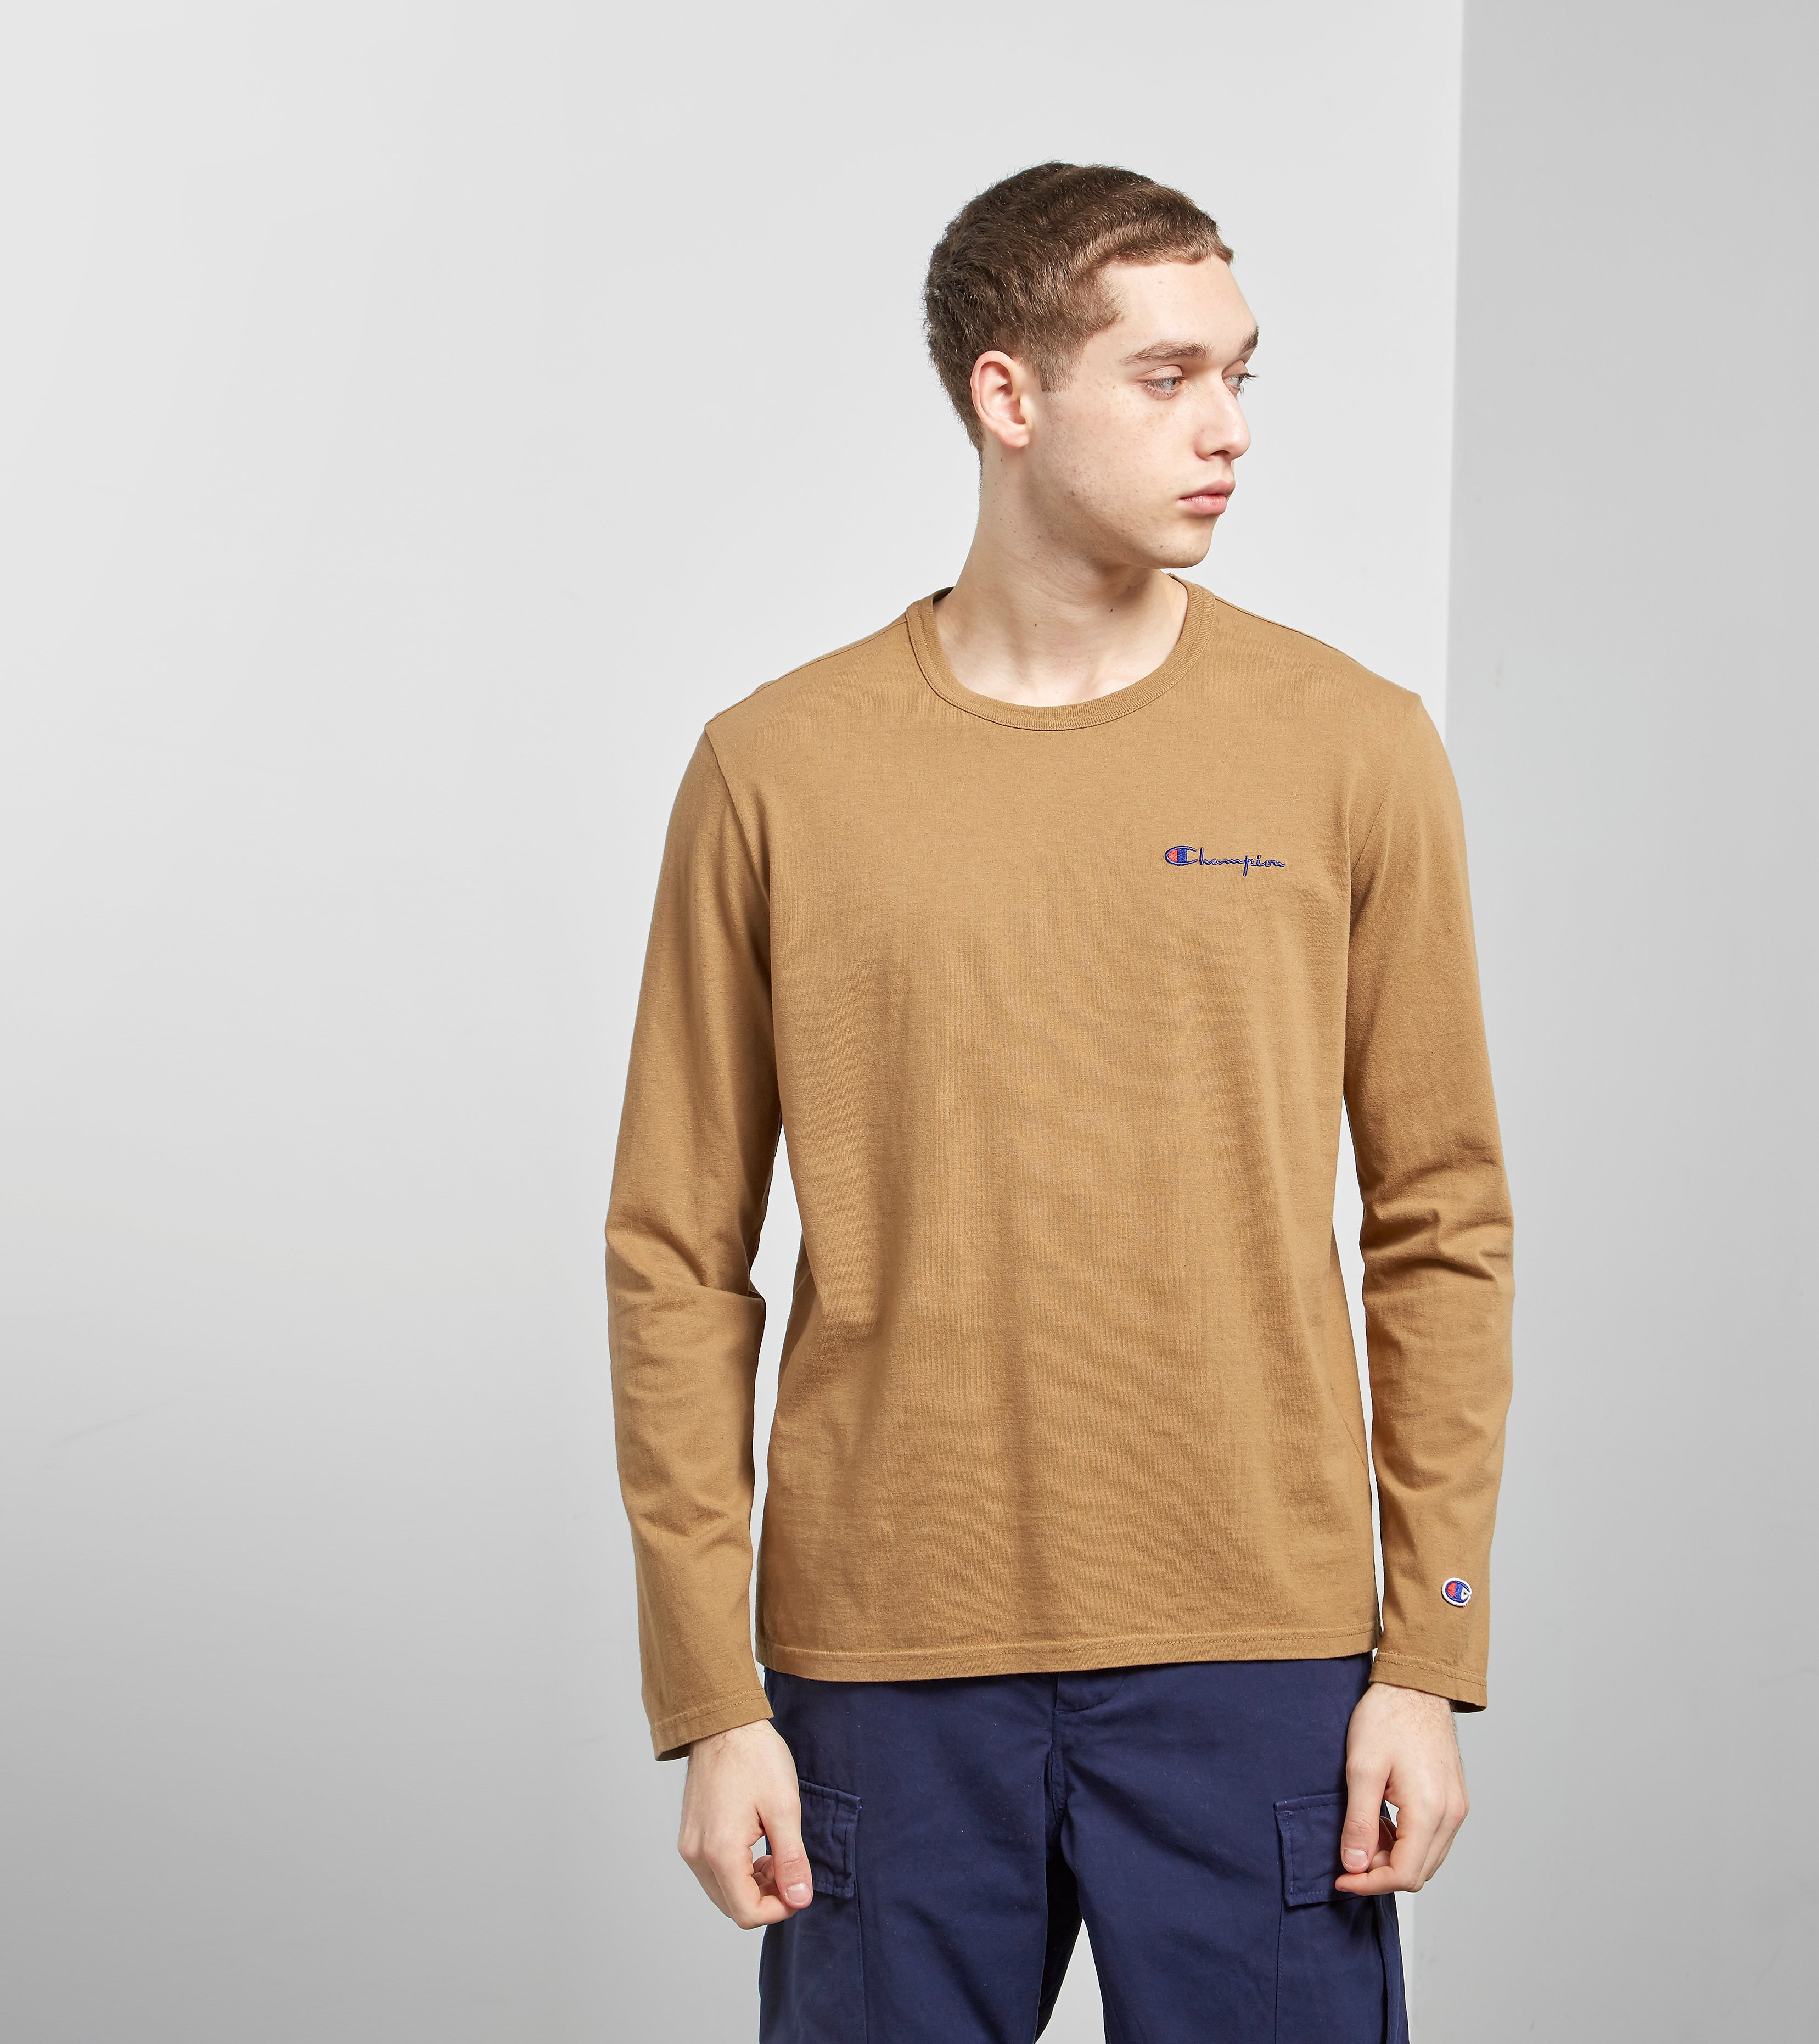 Champion Garment Dyed Long Sleeved T-Shirt -size? Exklusiv